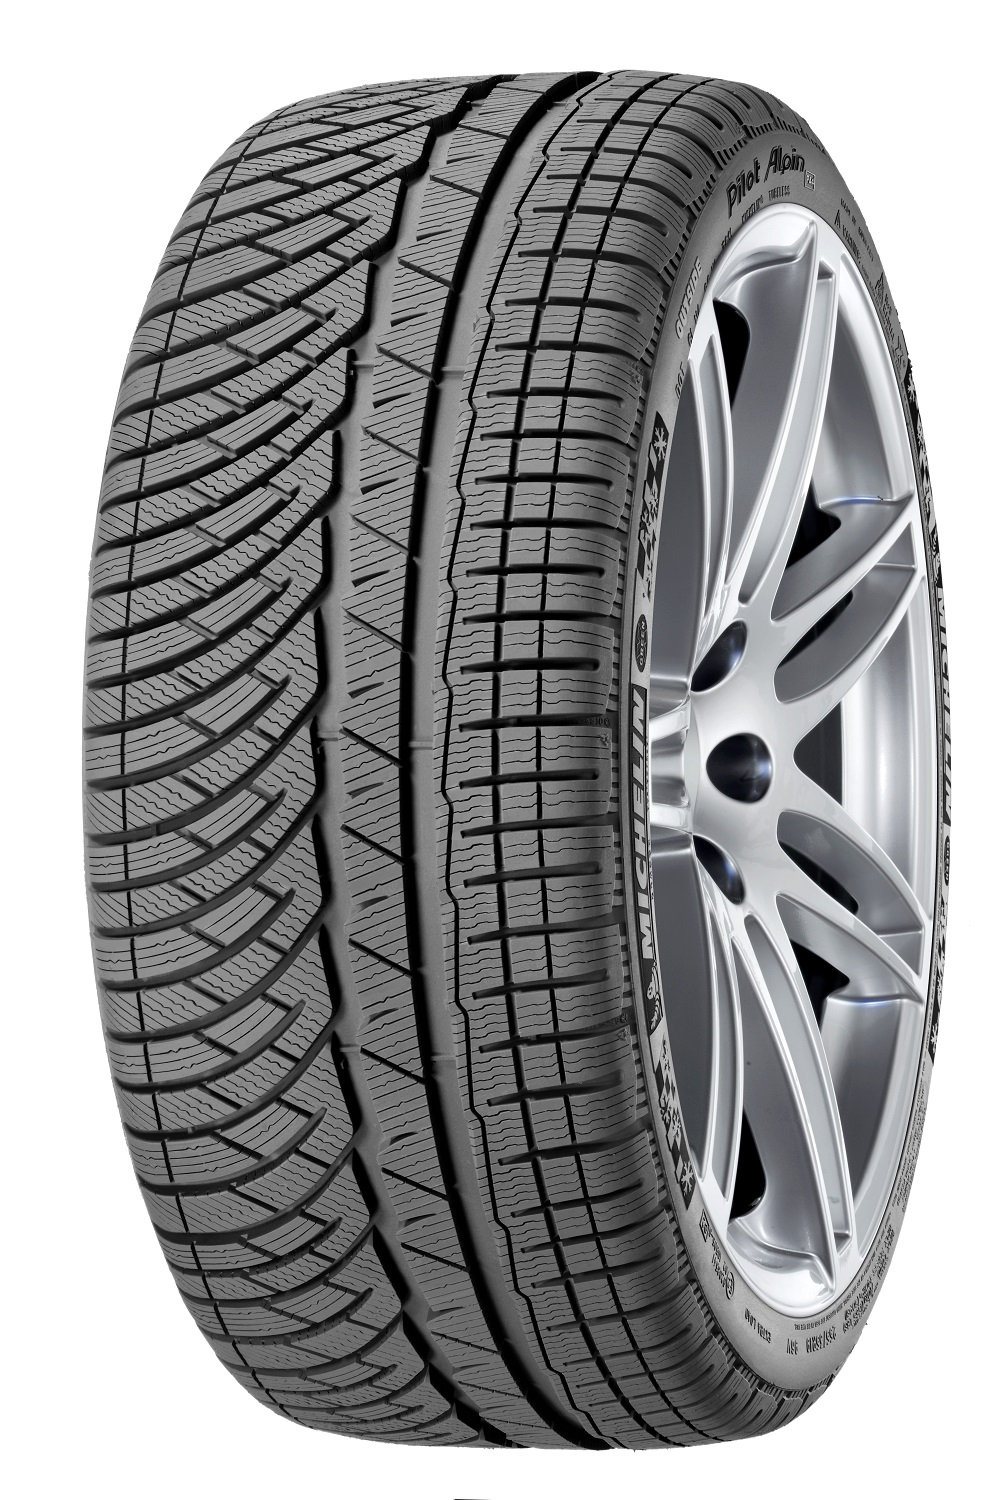 Anvelopa iarna MICHELIN PILOT ALPIN 4 245/45 R17 99V